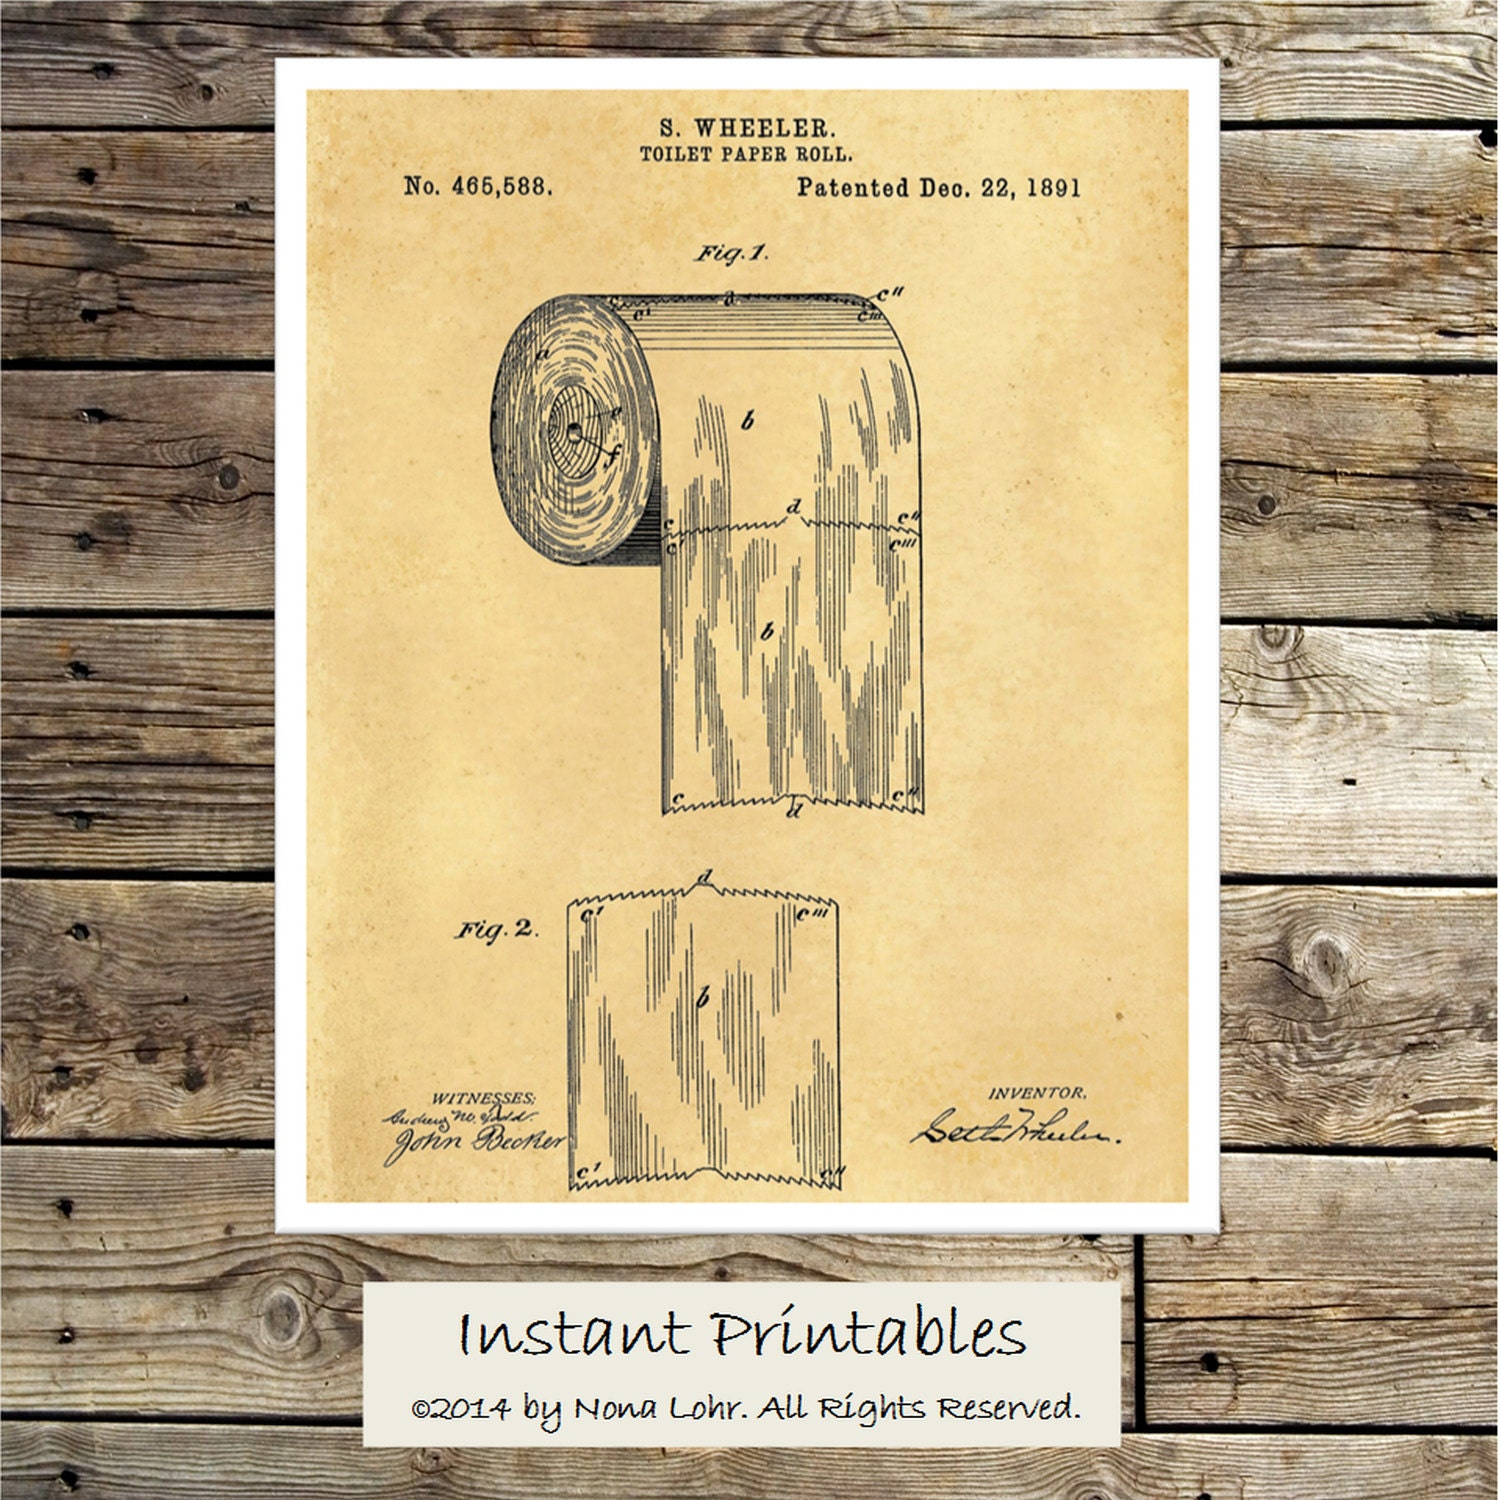 Vintage Toilet Paper Patent Print Old Wall Decor Digital Wall